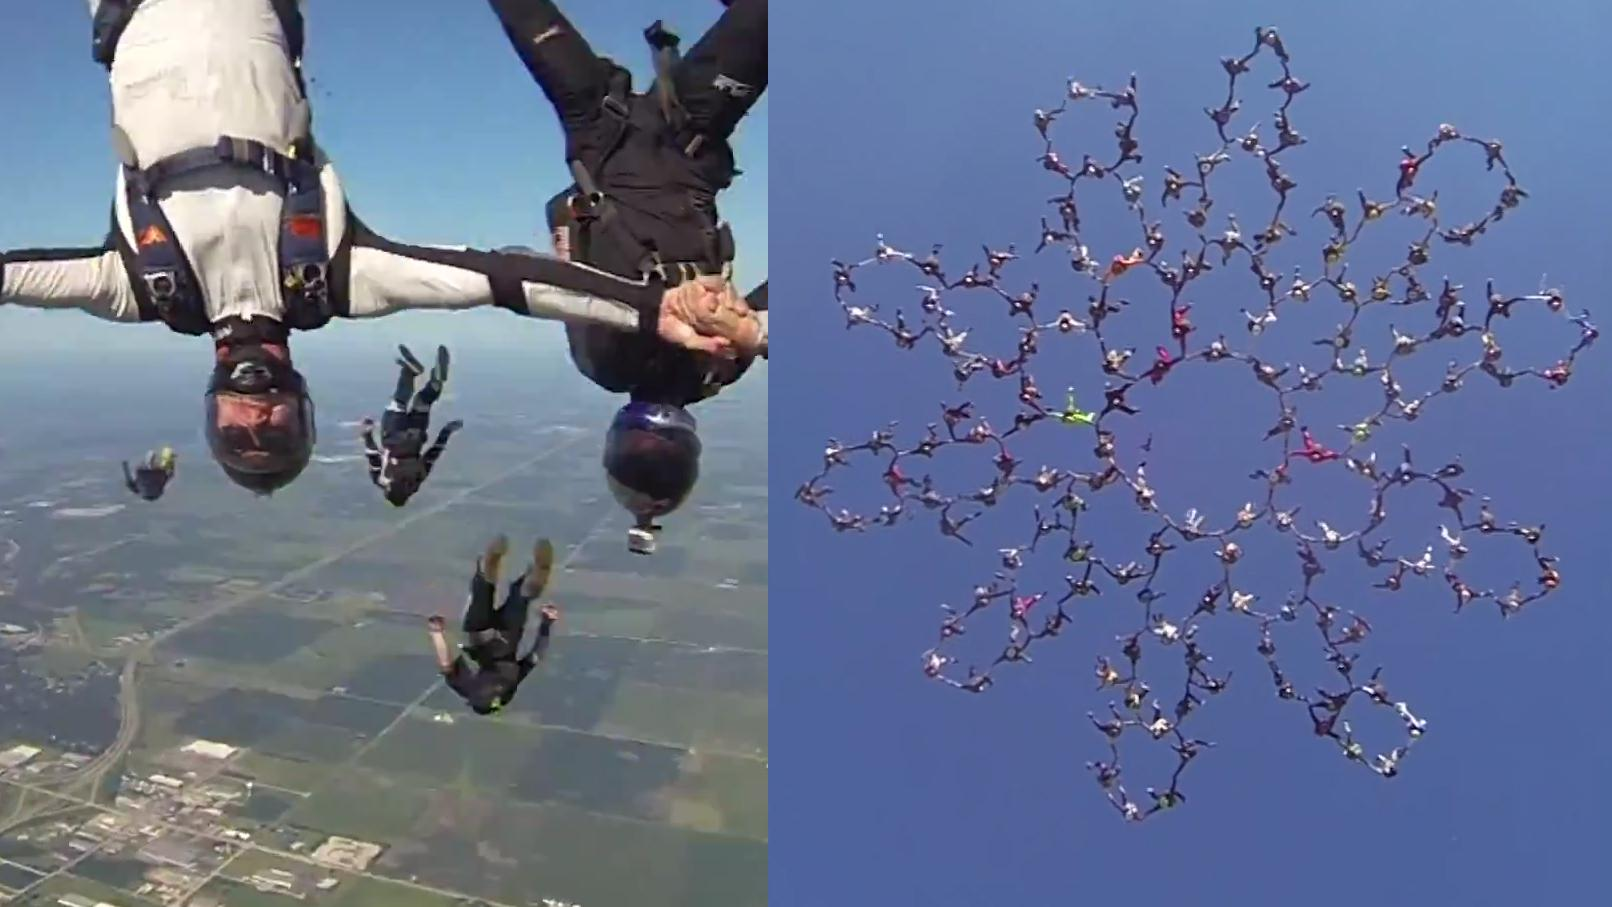 RT @mashable: Face first is the best way to smash a skydiving world record http://t.co/Q7RIMrOeSt http://t.co/EWcCZ1PAFA